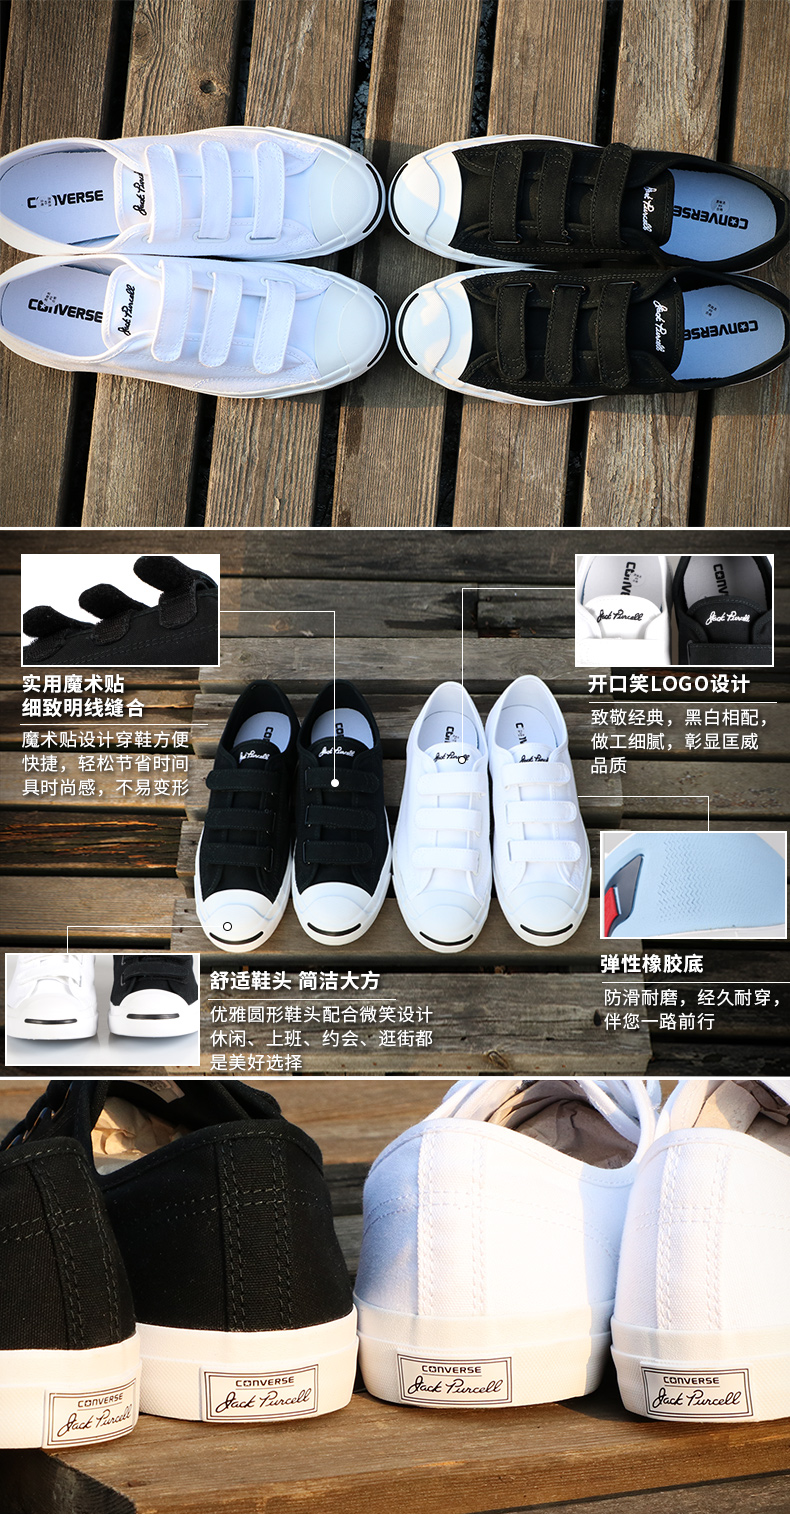 114b03b2bf81 CONVERSE Converse men s shoes women s shoes 2019 spring new velcro open  smile canvas shoes low to help sports shoes